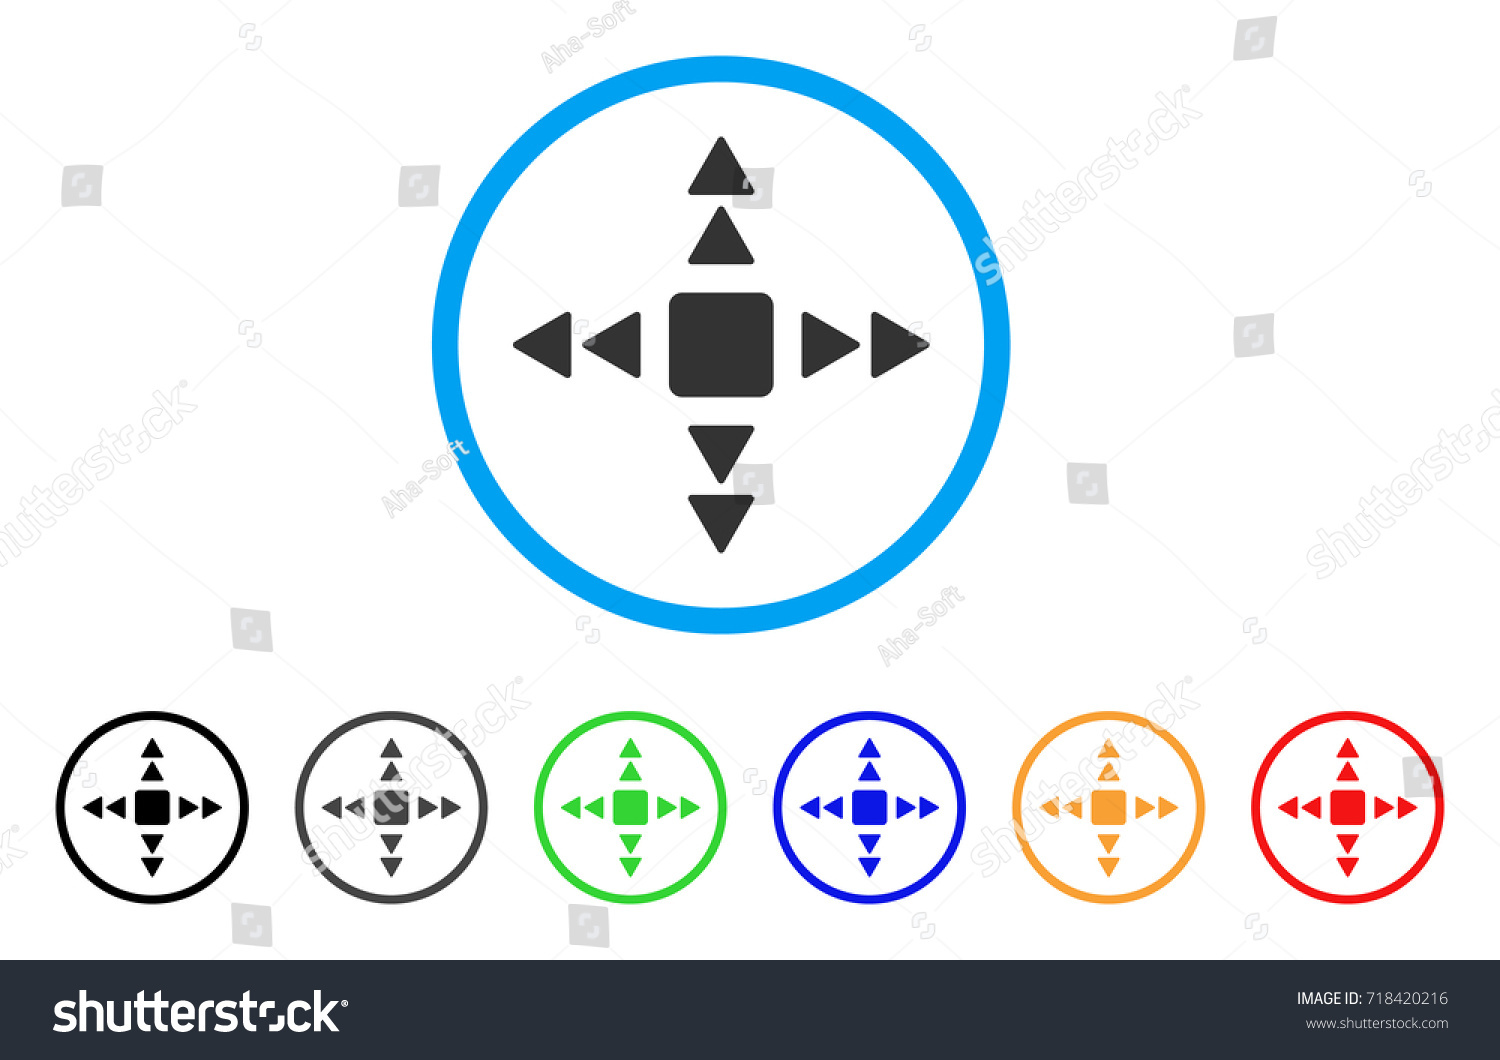 Direction triangles rounded icon style flat stock vector 718420216 direction triangles rounded icon style is a flat direction triangles gray symbol inside light blue buycottarizona Image collections